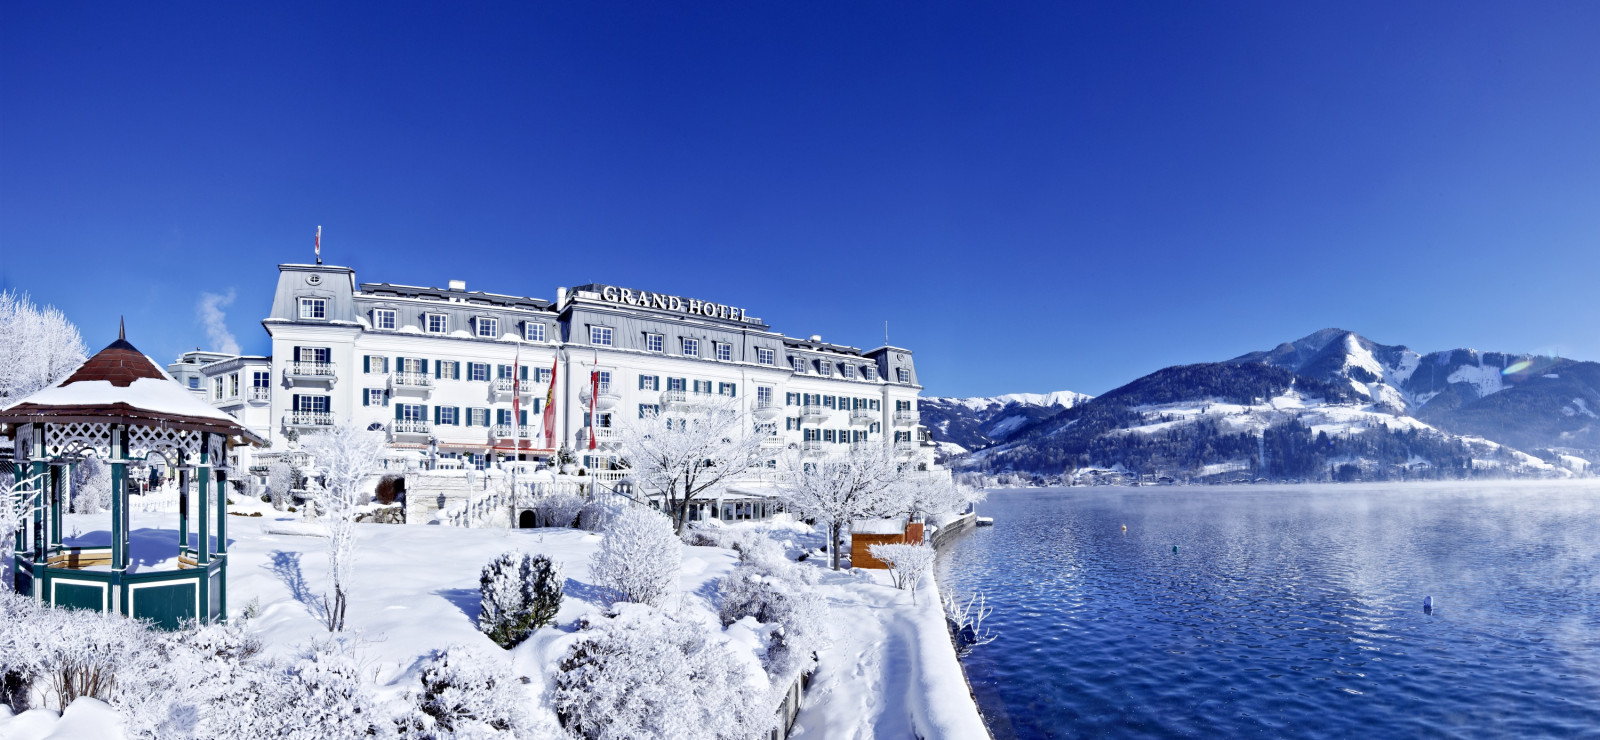 Grand Hotel Zell am See Bilder | Bild 1